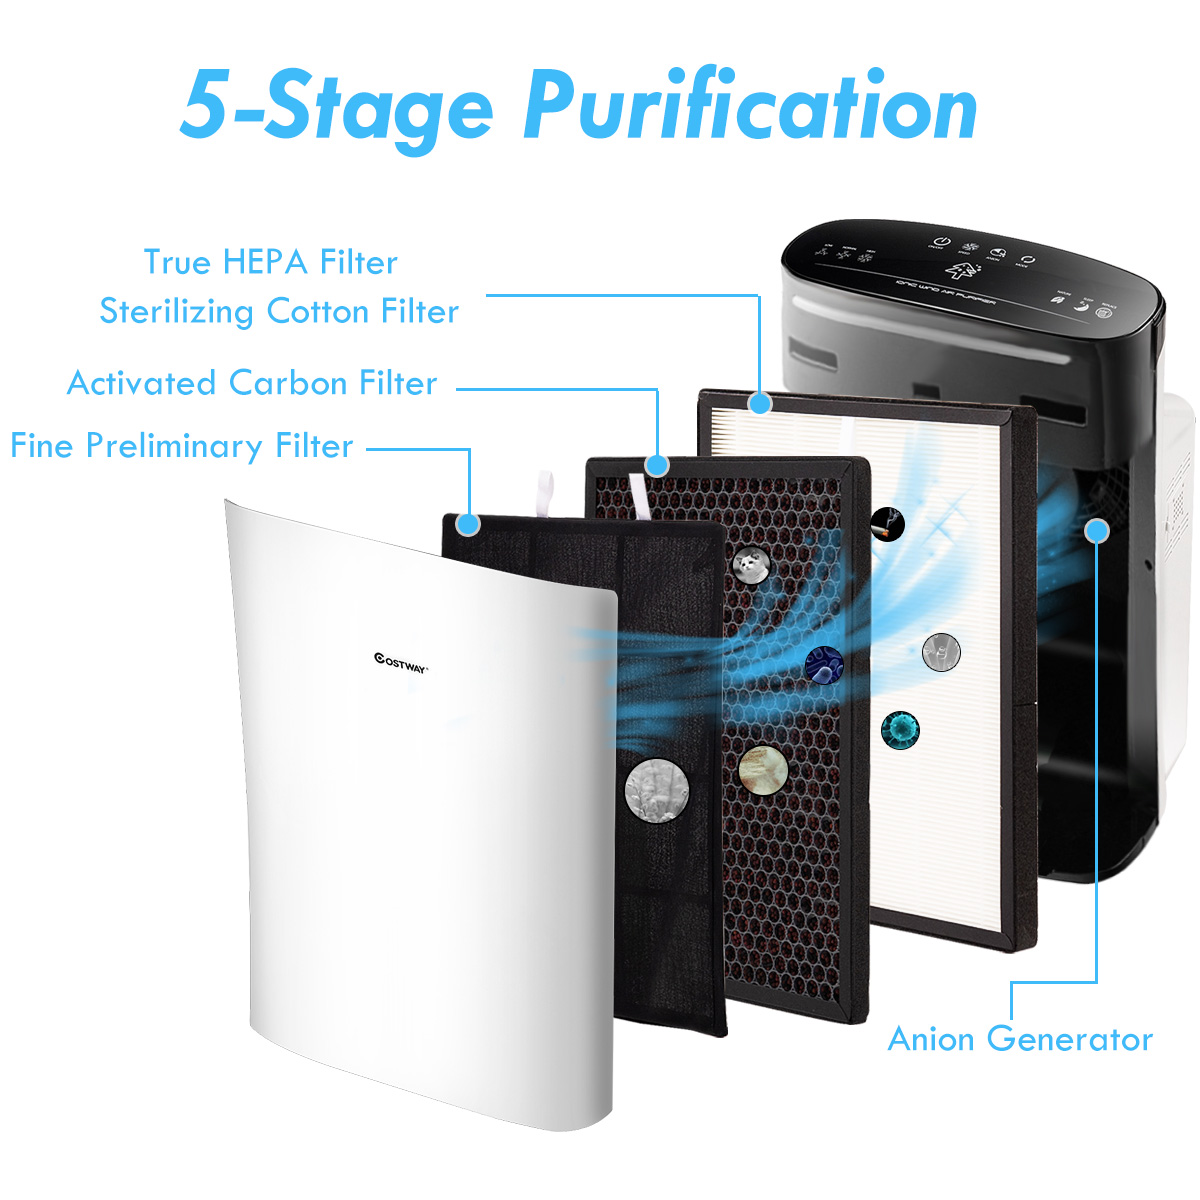 Powerful-Air-Purifier-Cleaner-HEPA-Filter-to-Remove-Odor-Dust-Mold-Smoke thumbnail 5